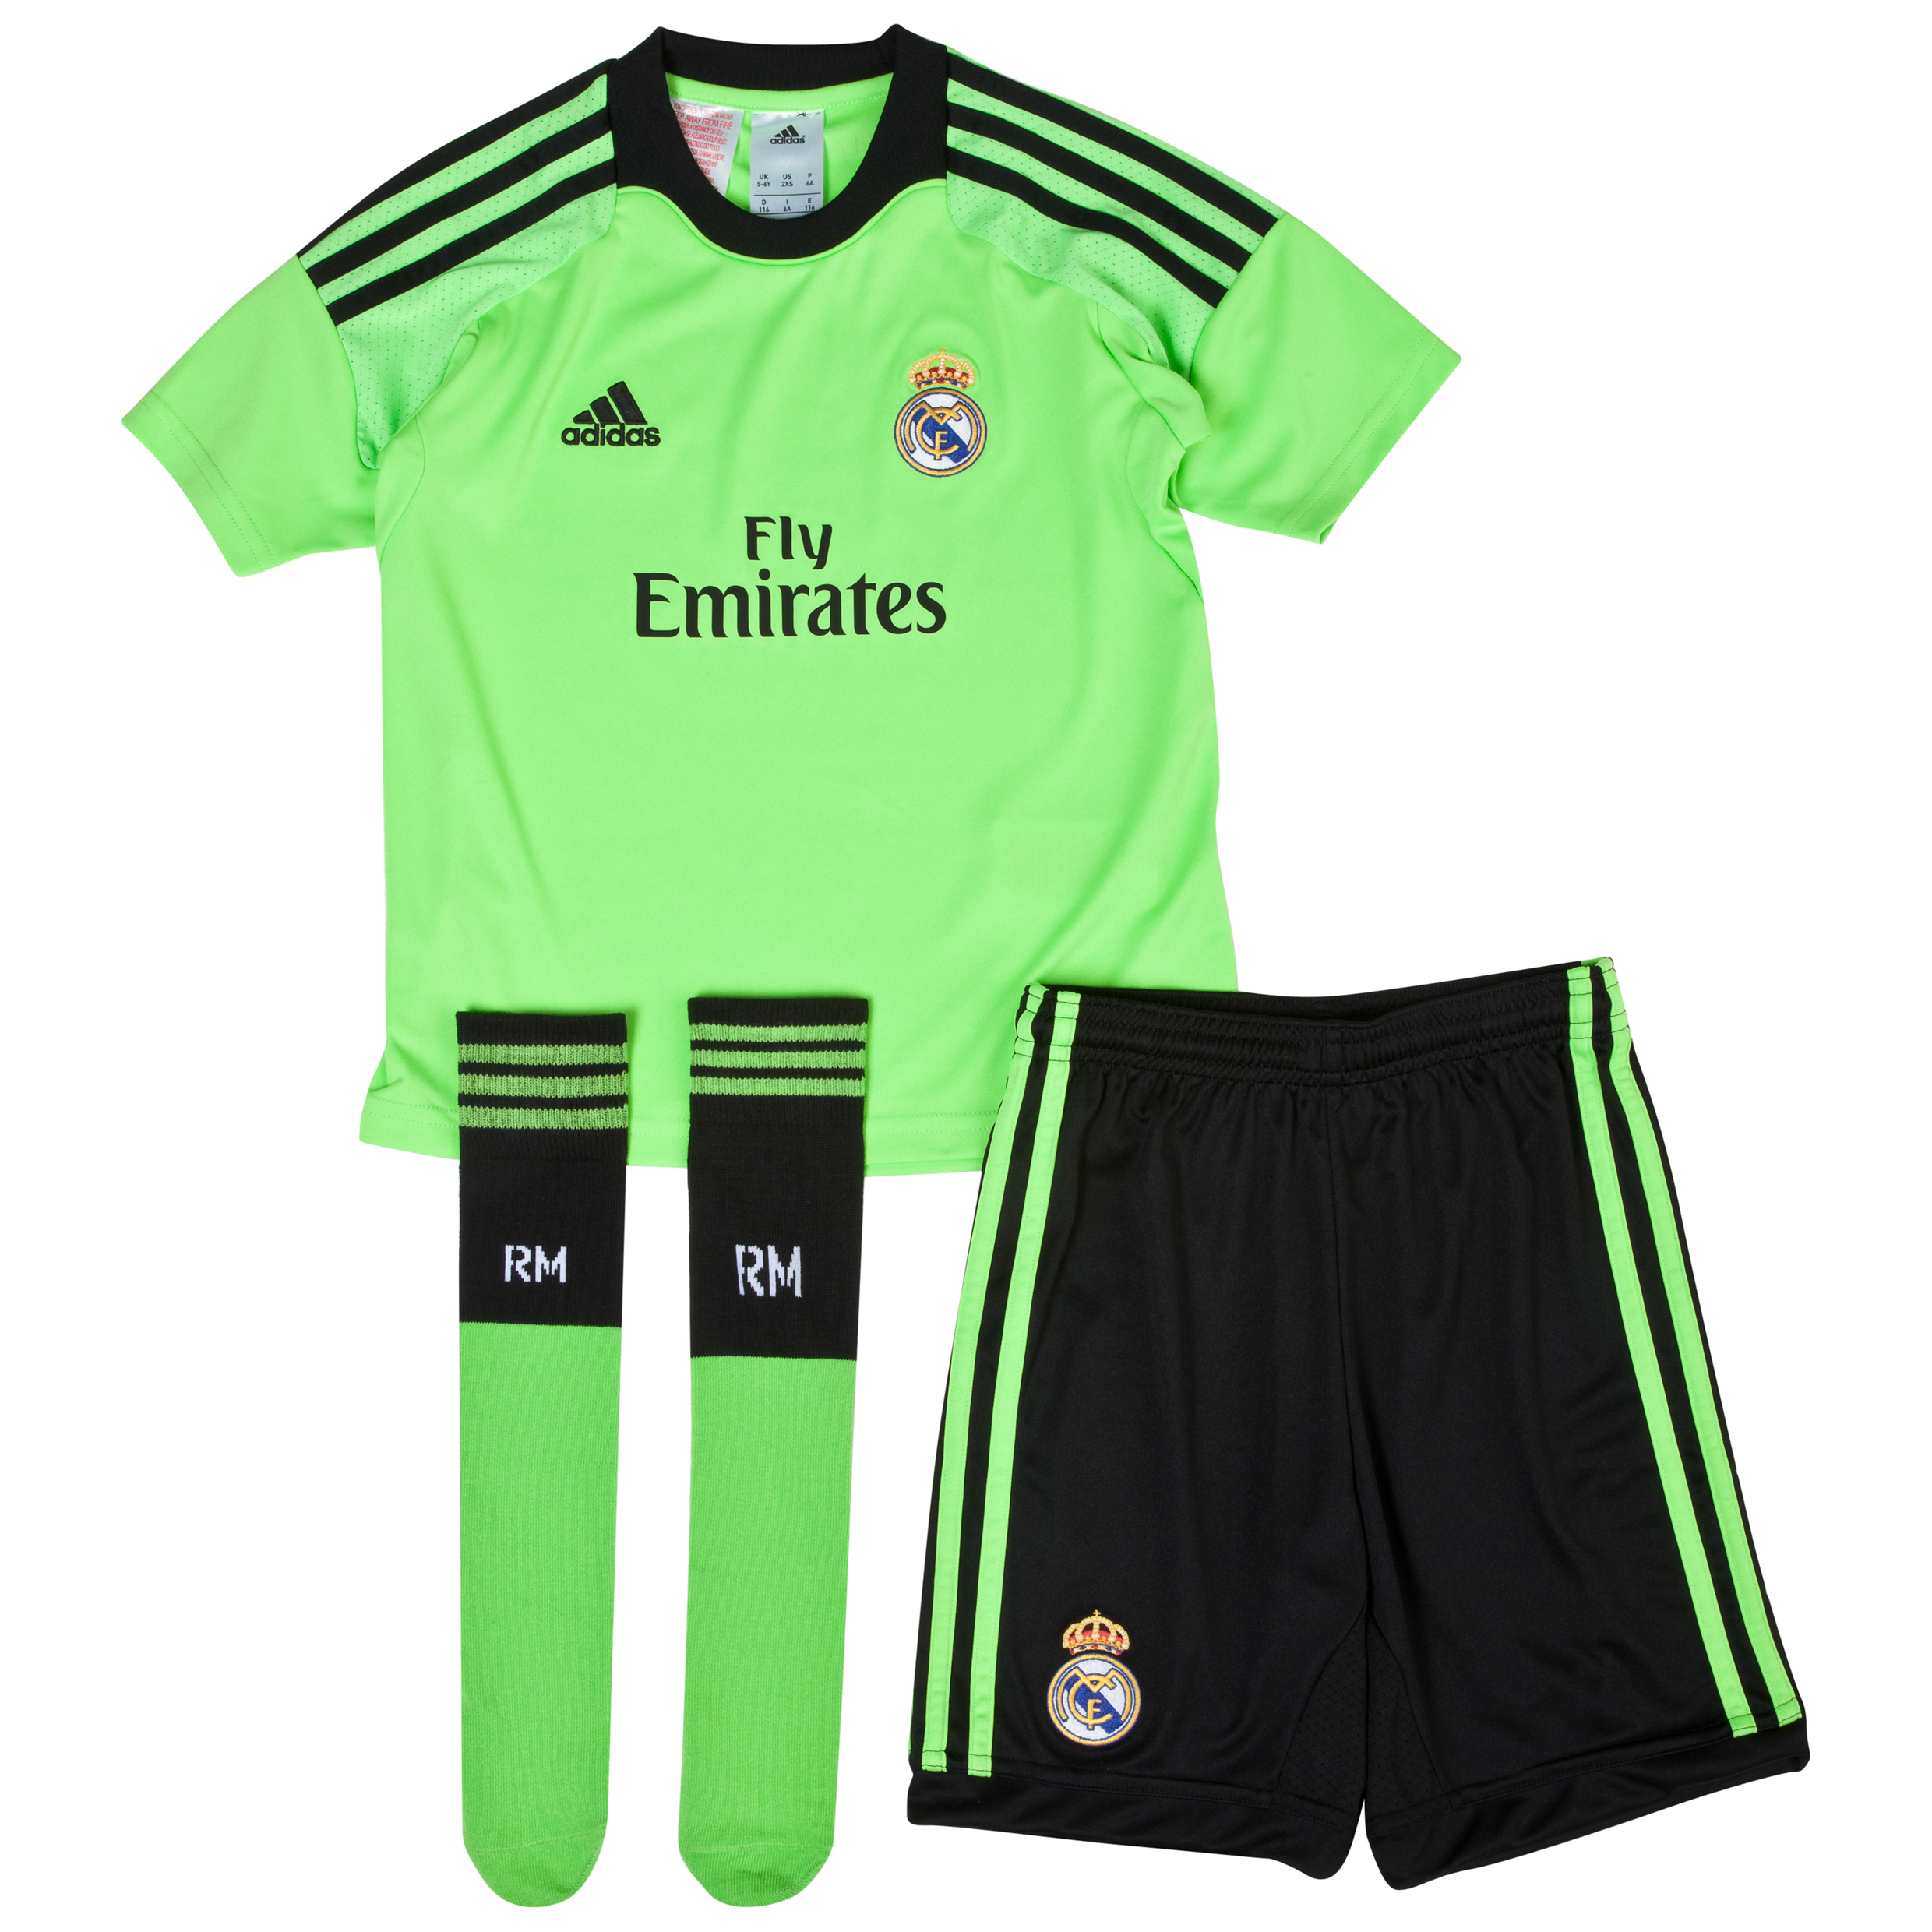 Buy Real Madrid Away Goalkeeper Mini Kit 2013/14